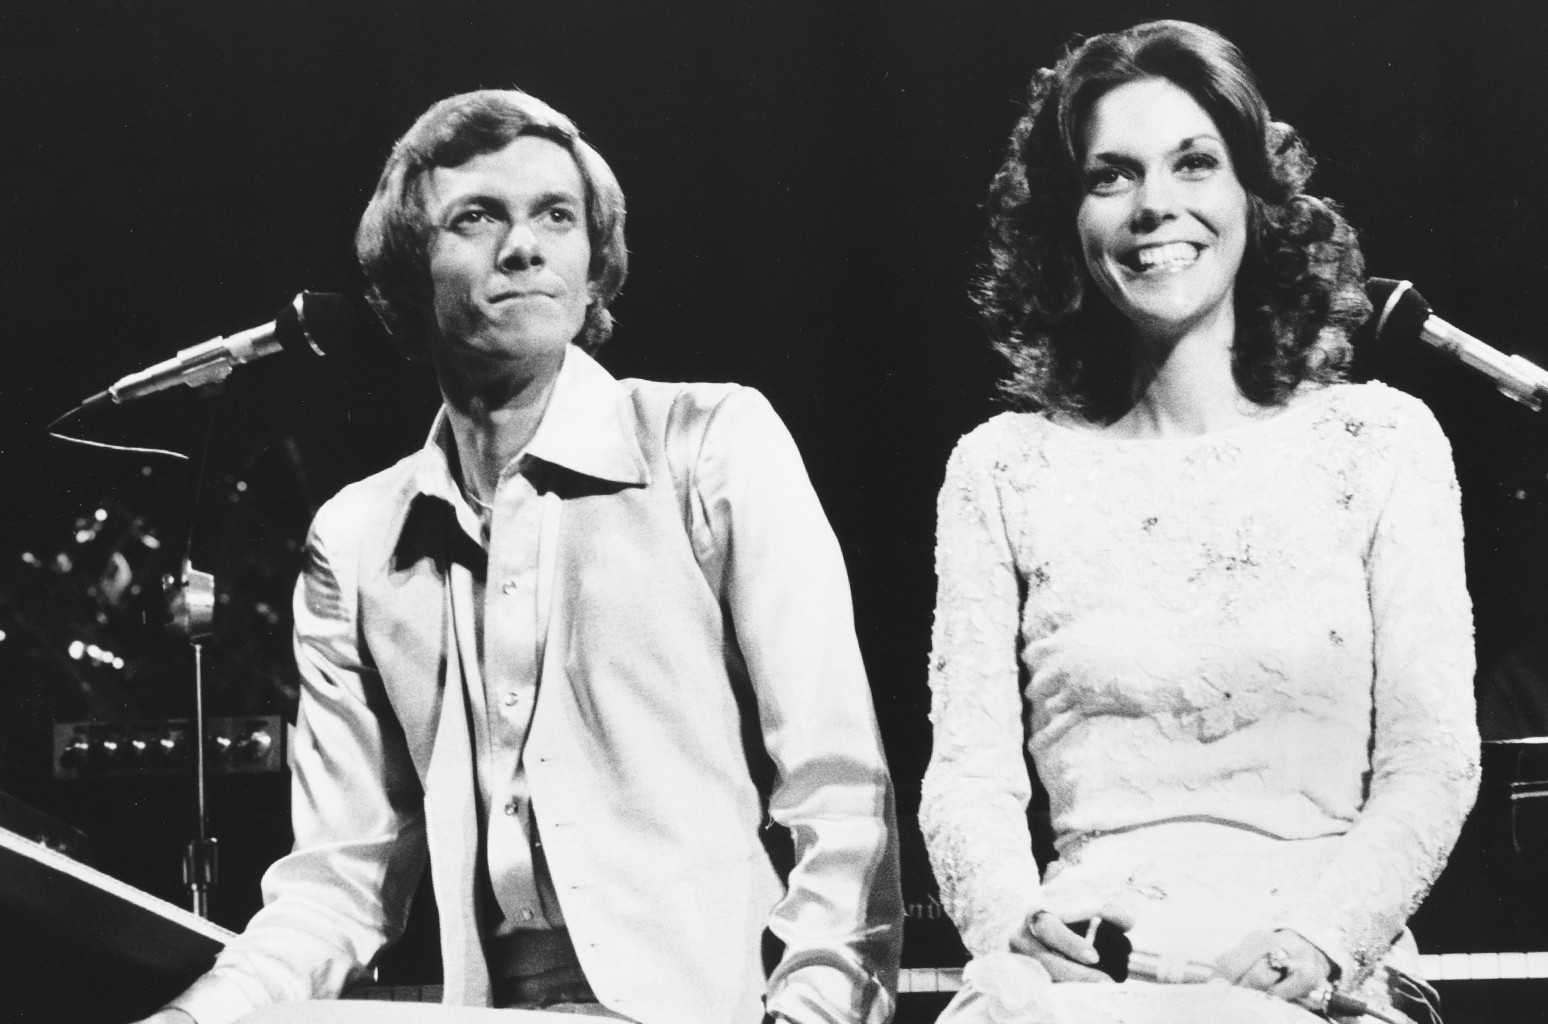 Richard and Karen Carpenter of The Carpenters photographed in London in 1976.